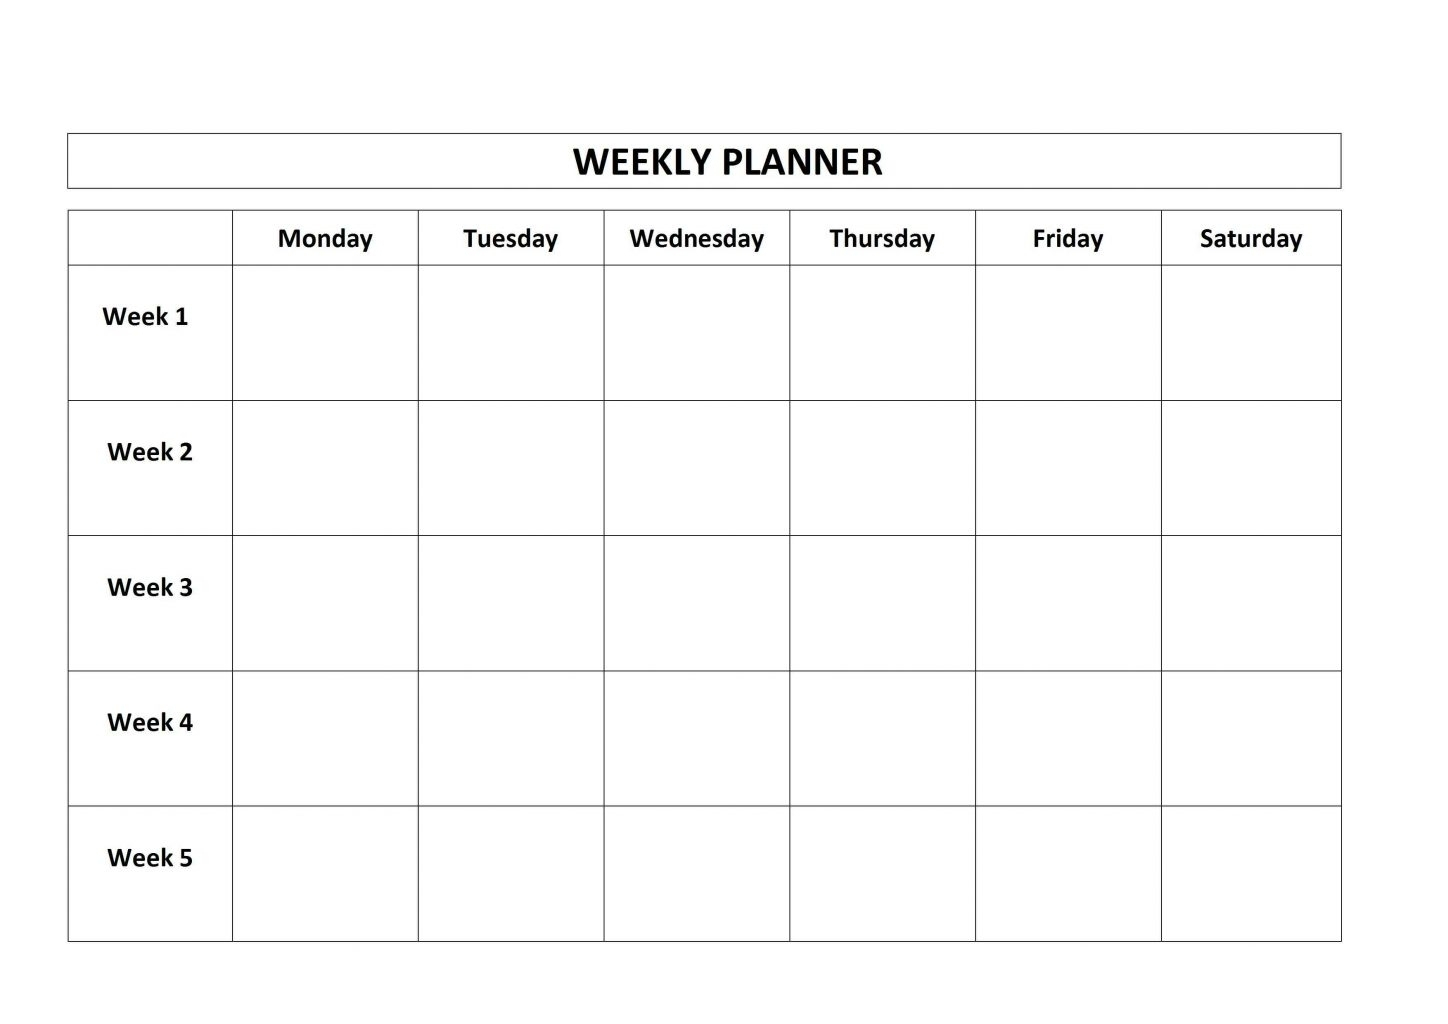 Monday To Sunday Schedule Template Timetable Calendar Weekly Thru for Calendar Template Monday To Sunday